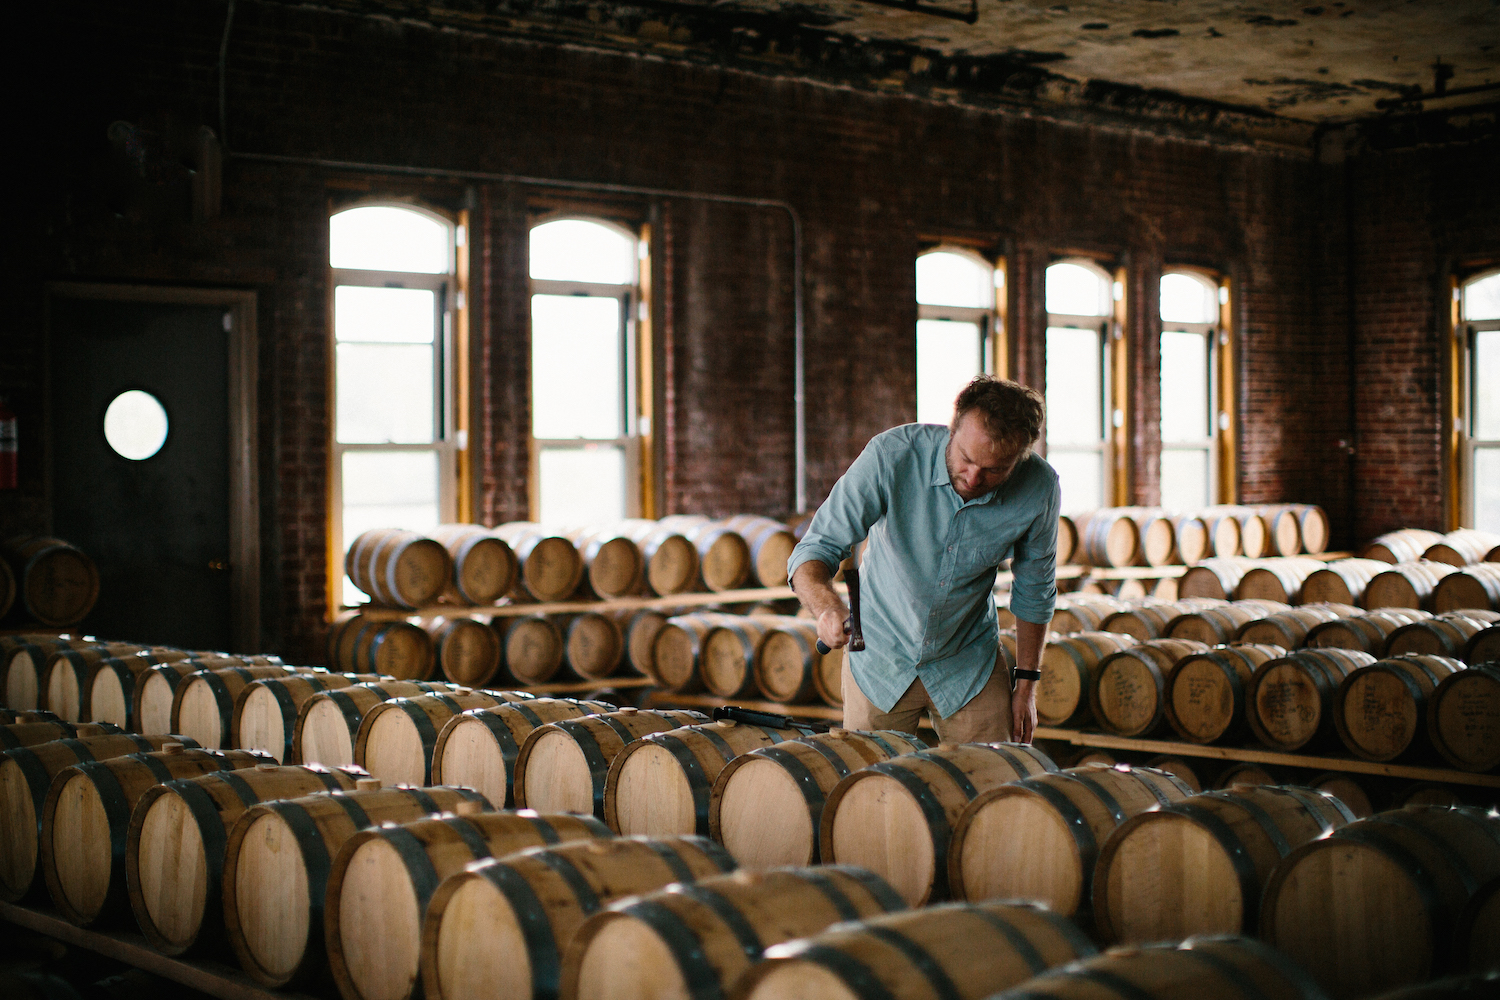 Checking On Barrels